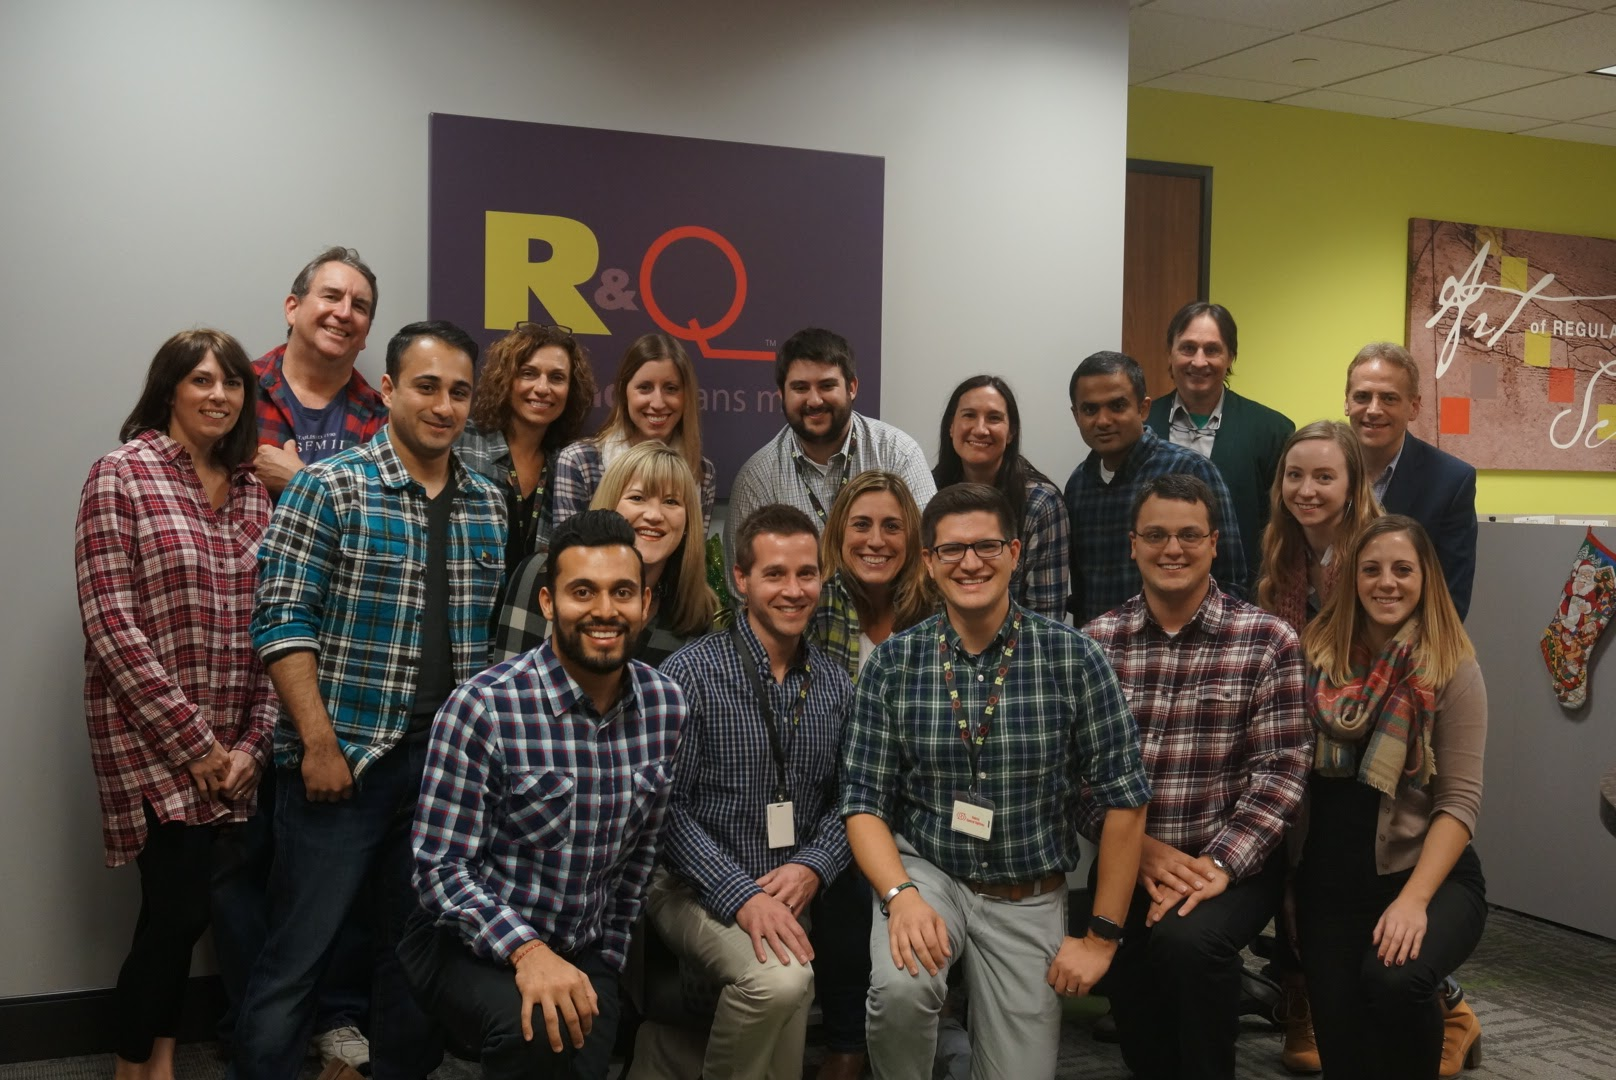 Regulatory and Quality Solutions Employee Flannel Friday